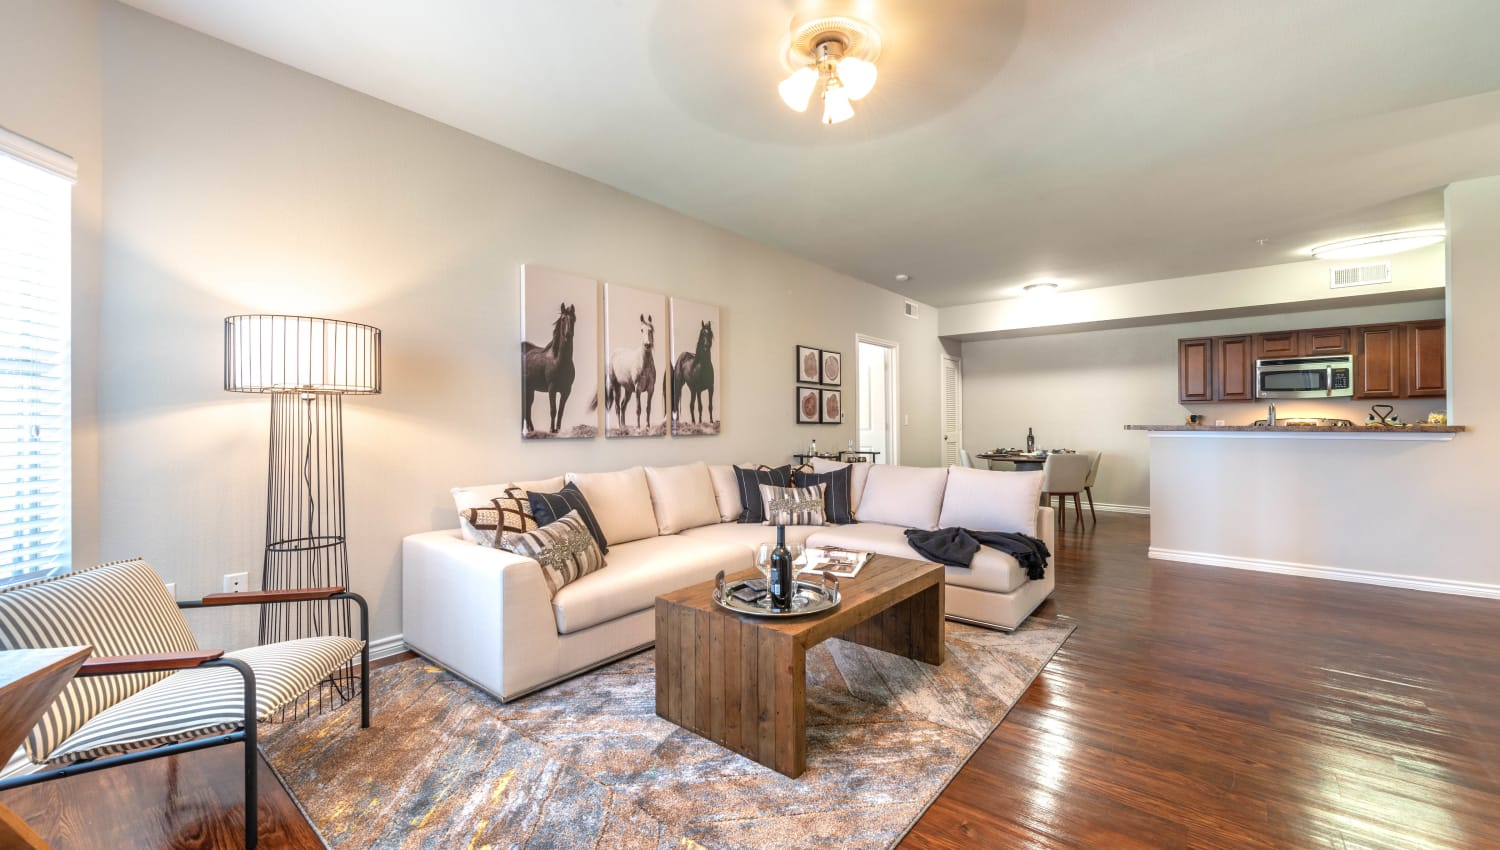 Ceiling fan and modern furnishings in the living area of a model home at Olympus Willow Park in Willow Park, Texas